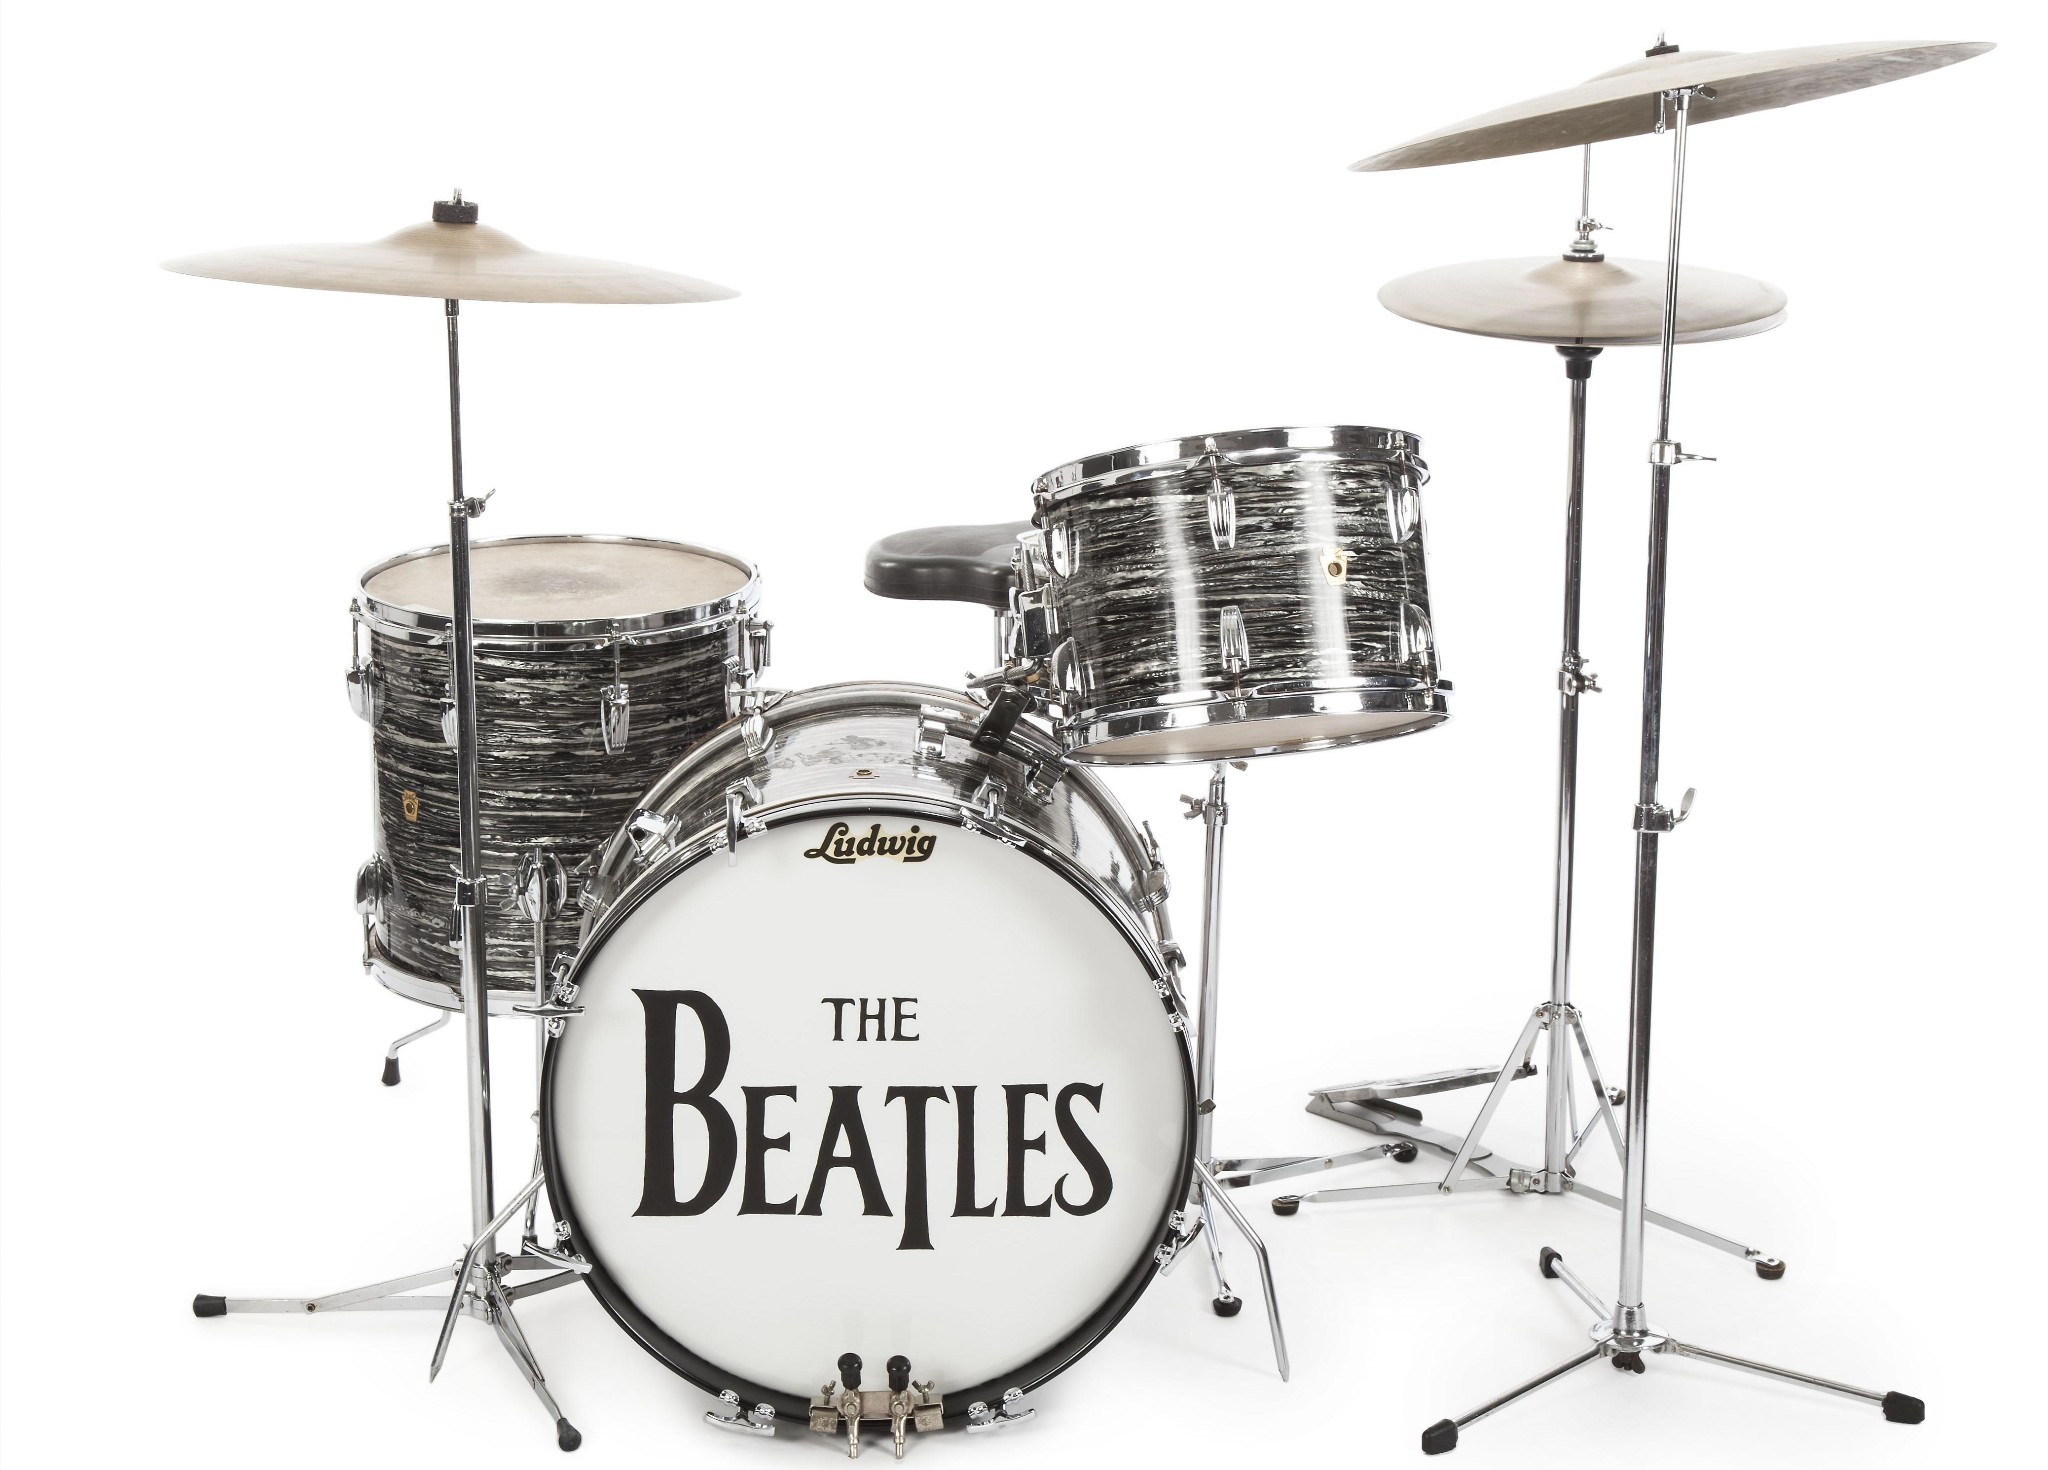 Ringo Starr's Beatles' drum kit sells for $2.2m at auction